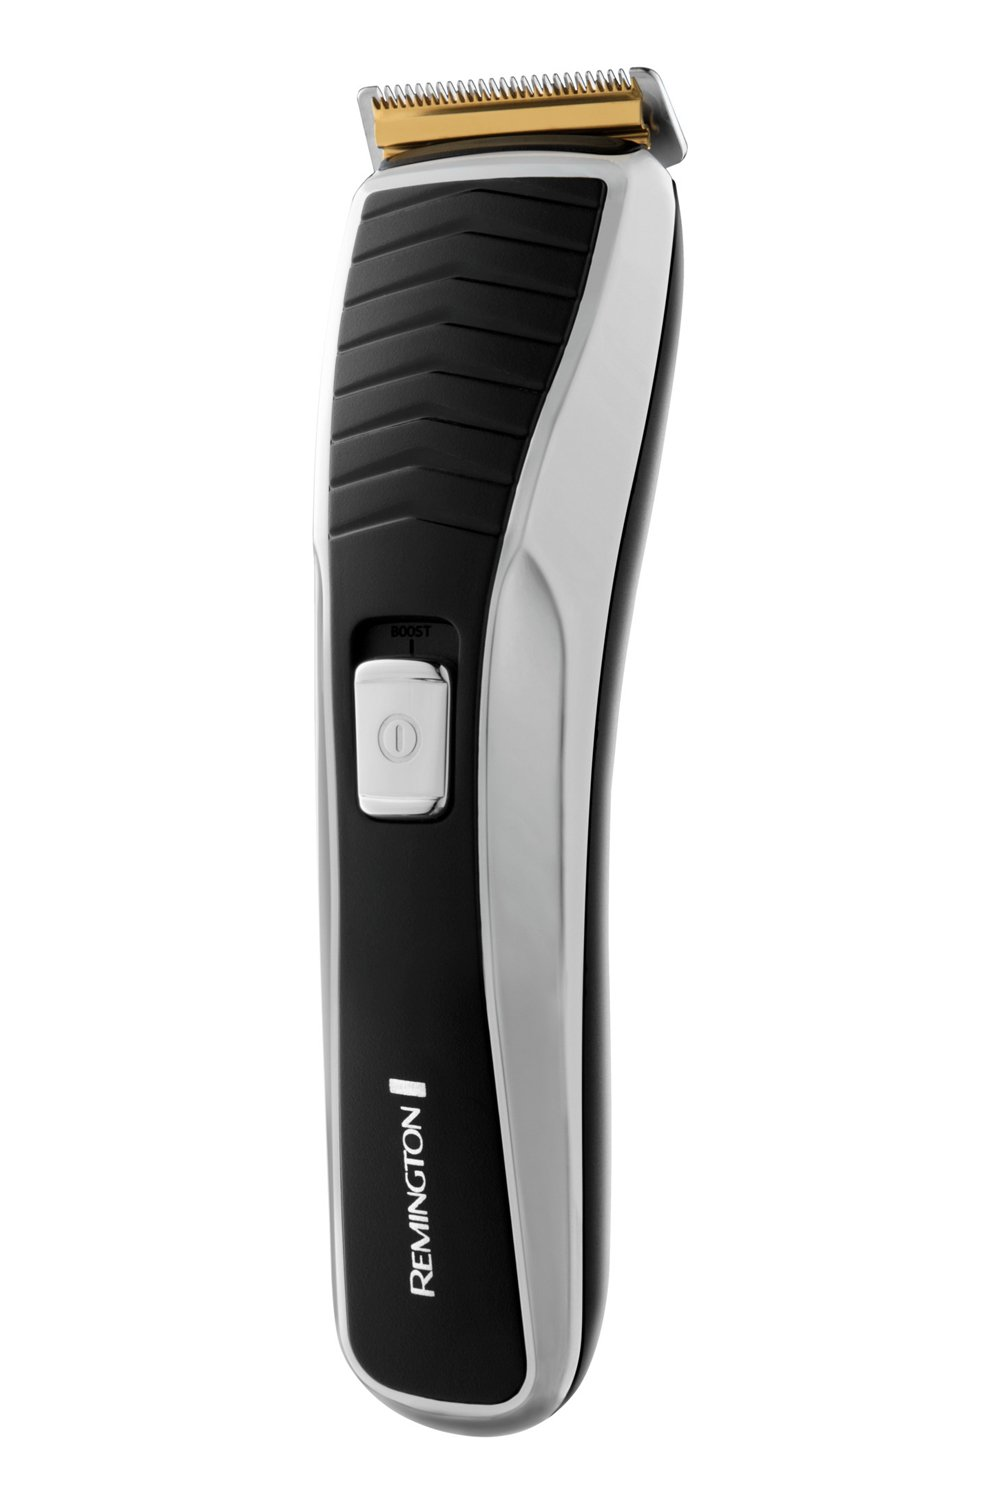 Remington HC7130 Motor Pro Power Titanium - Cortapelos inalámbrico, 2 peines ajustables (1-42 mm), cuchillas AcuAngle, 60 minutos de autonomía Spectrum Brands 43222560100